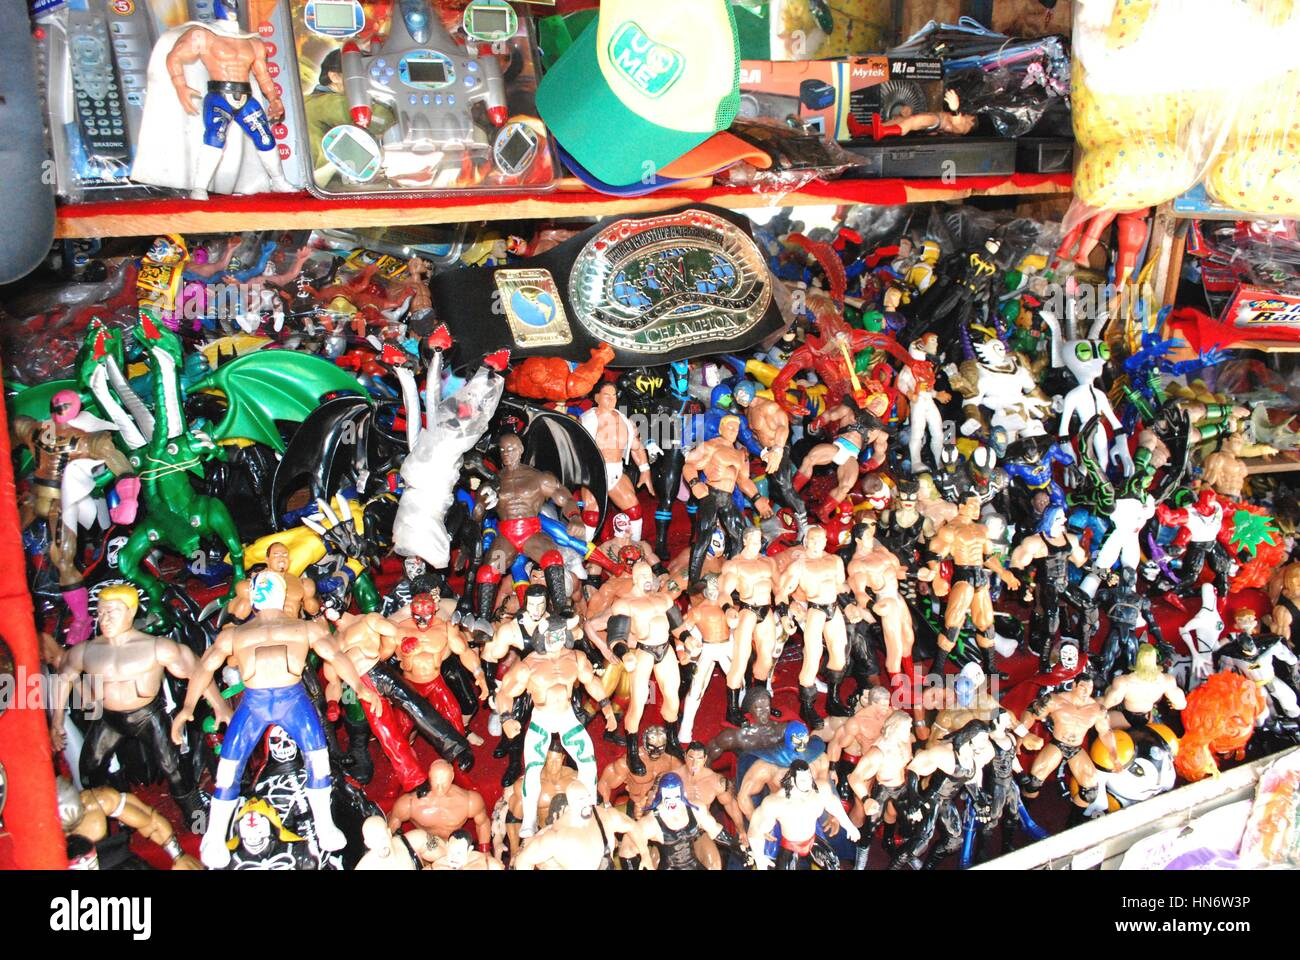 A toy stall in Mexico, full of wrestling action figures. - Stock Image